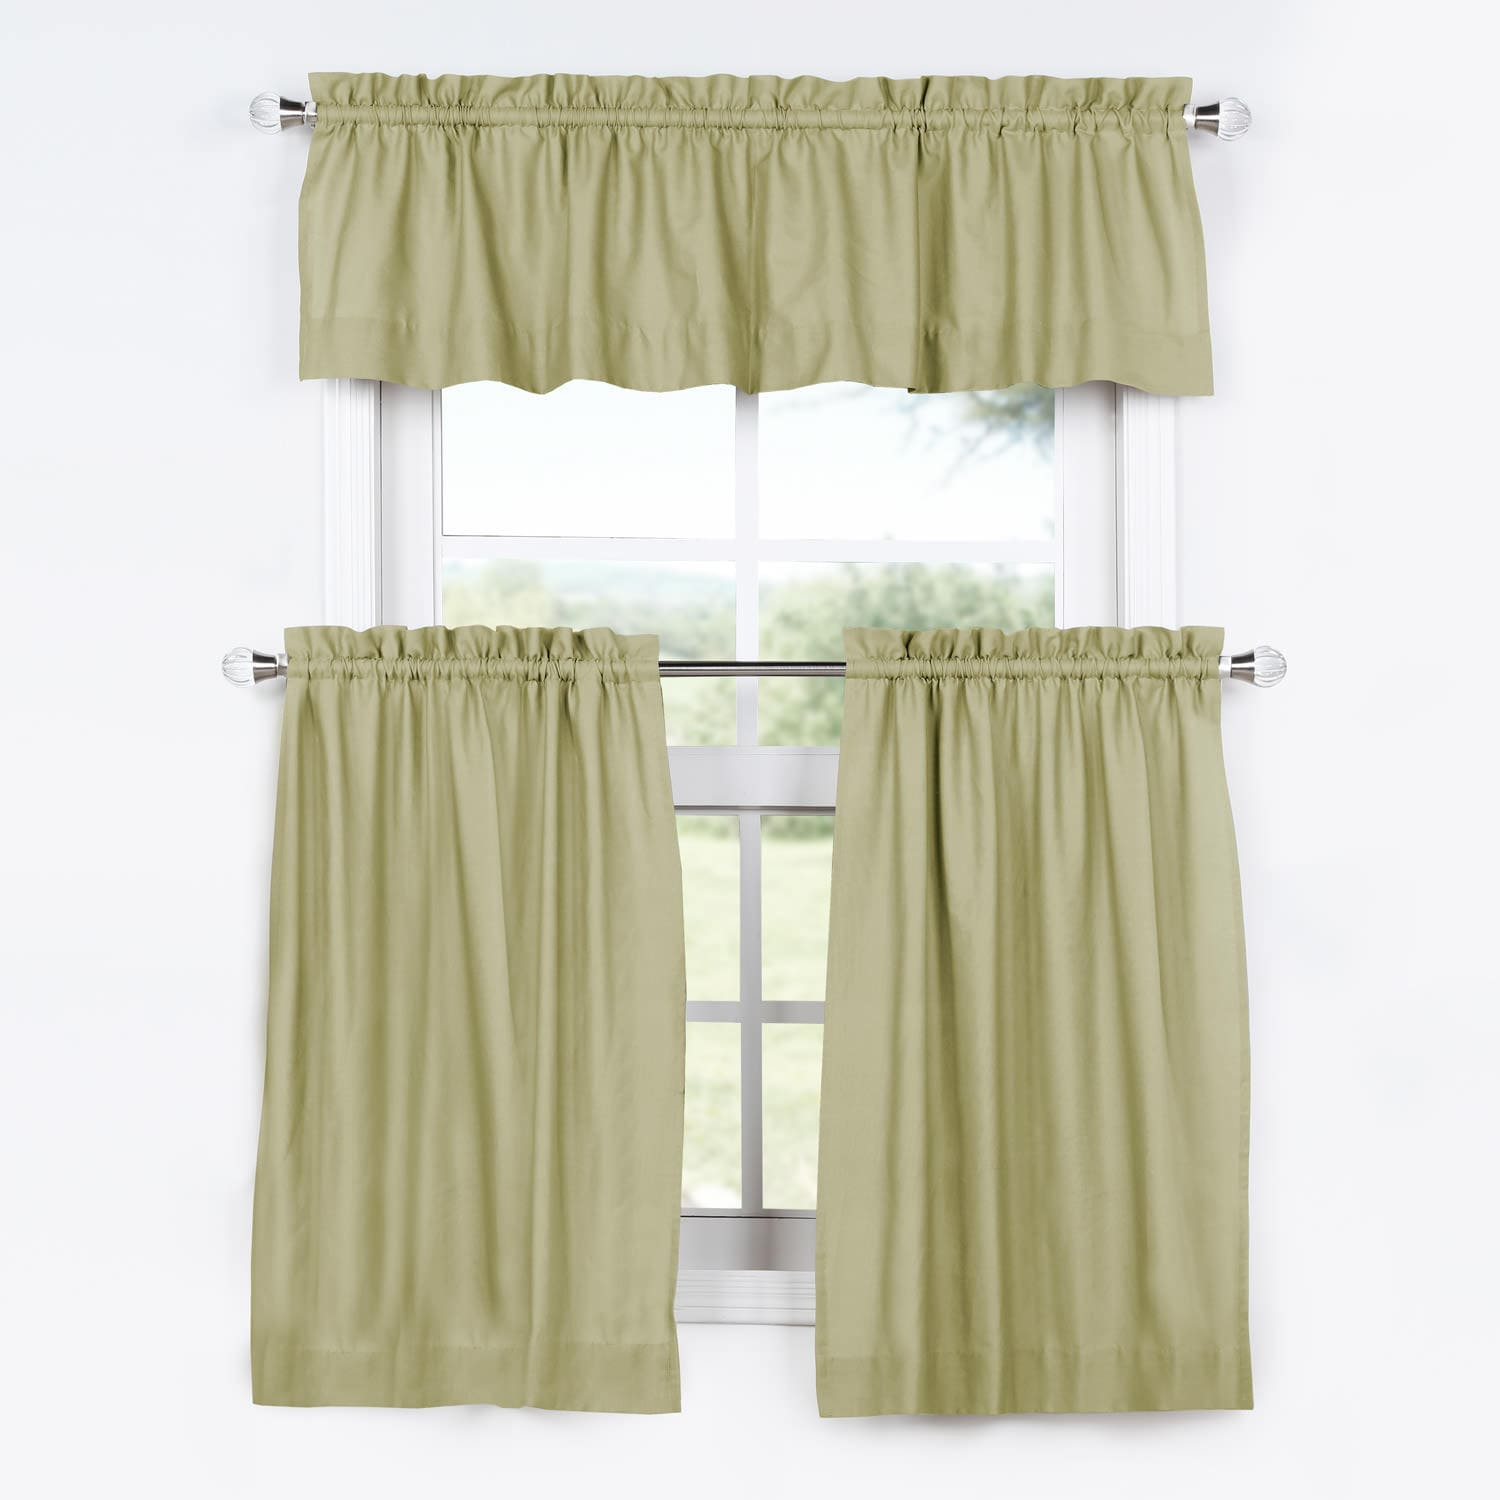 Kitchen Tier Curtains Sets Mountain Moss Solid Cotton Kitchen Tier Curtain And Valance Set